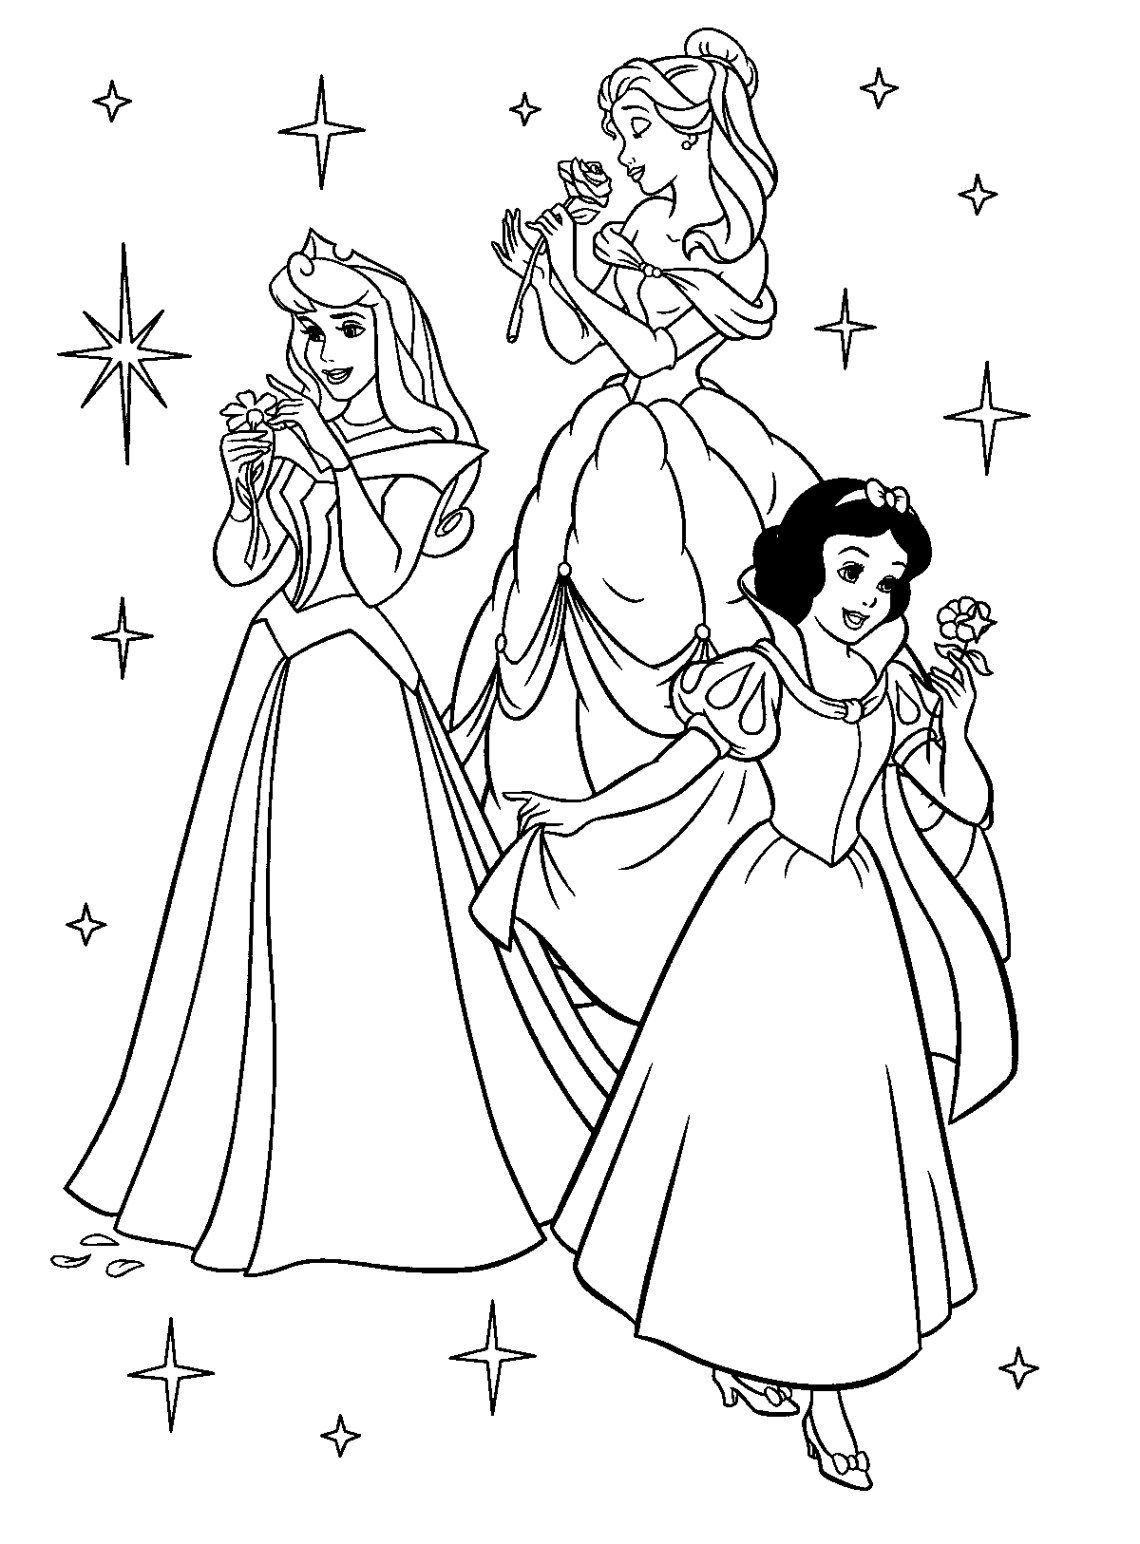 Princess Coloring Pages - Best Coloring Pages For Kids | colouring pages for disney princesses